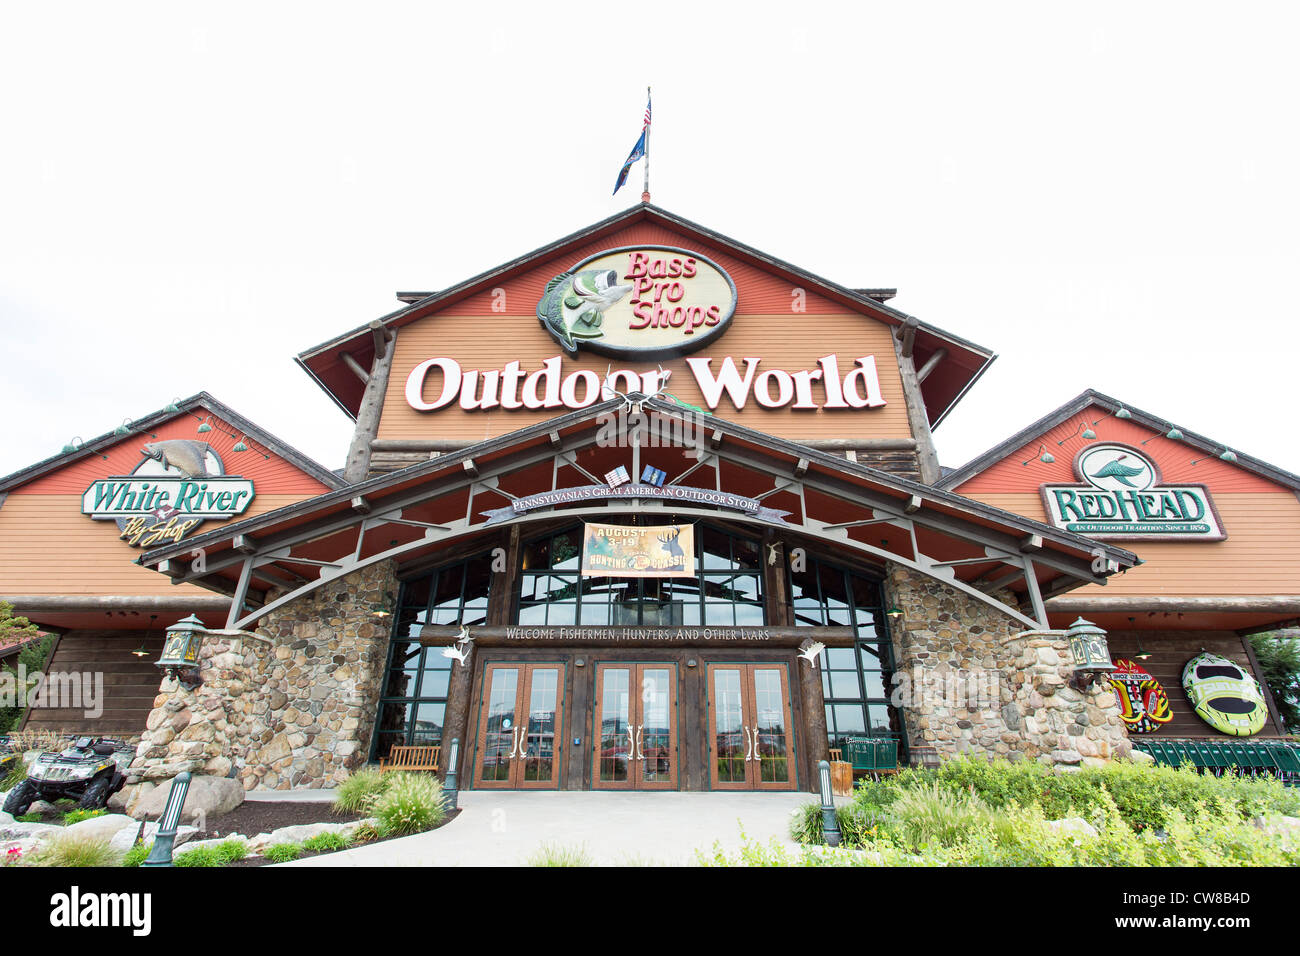 bass pro shops in Washington County, PA - Yellowbook